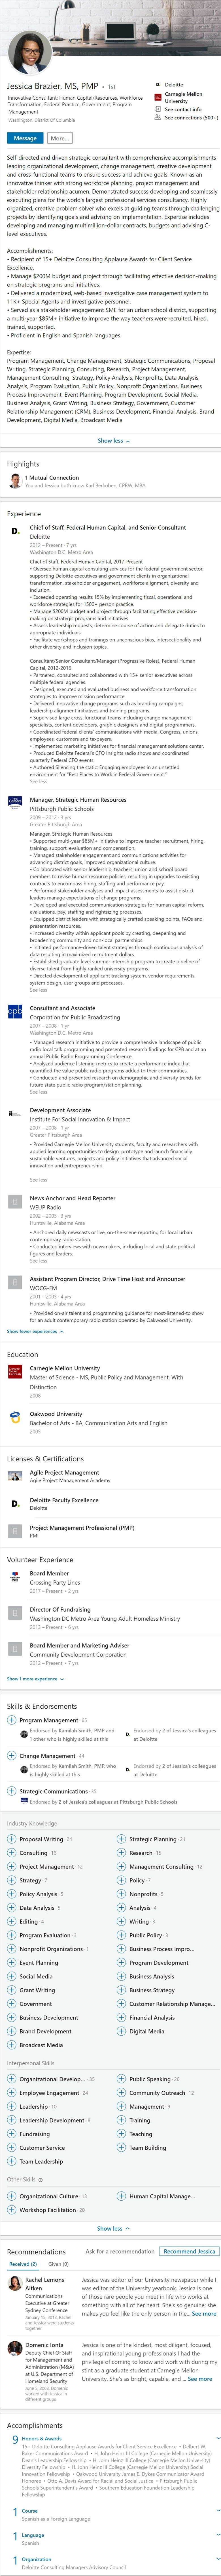 federal government public sector consulting Linkedin profile example 2329